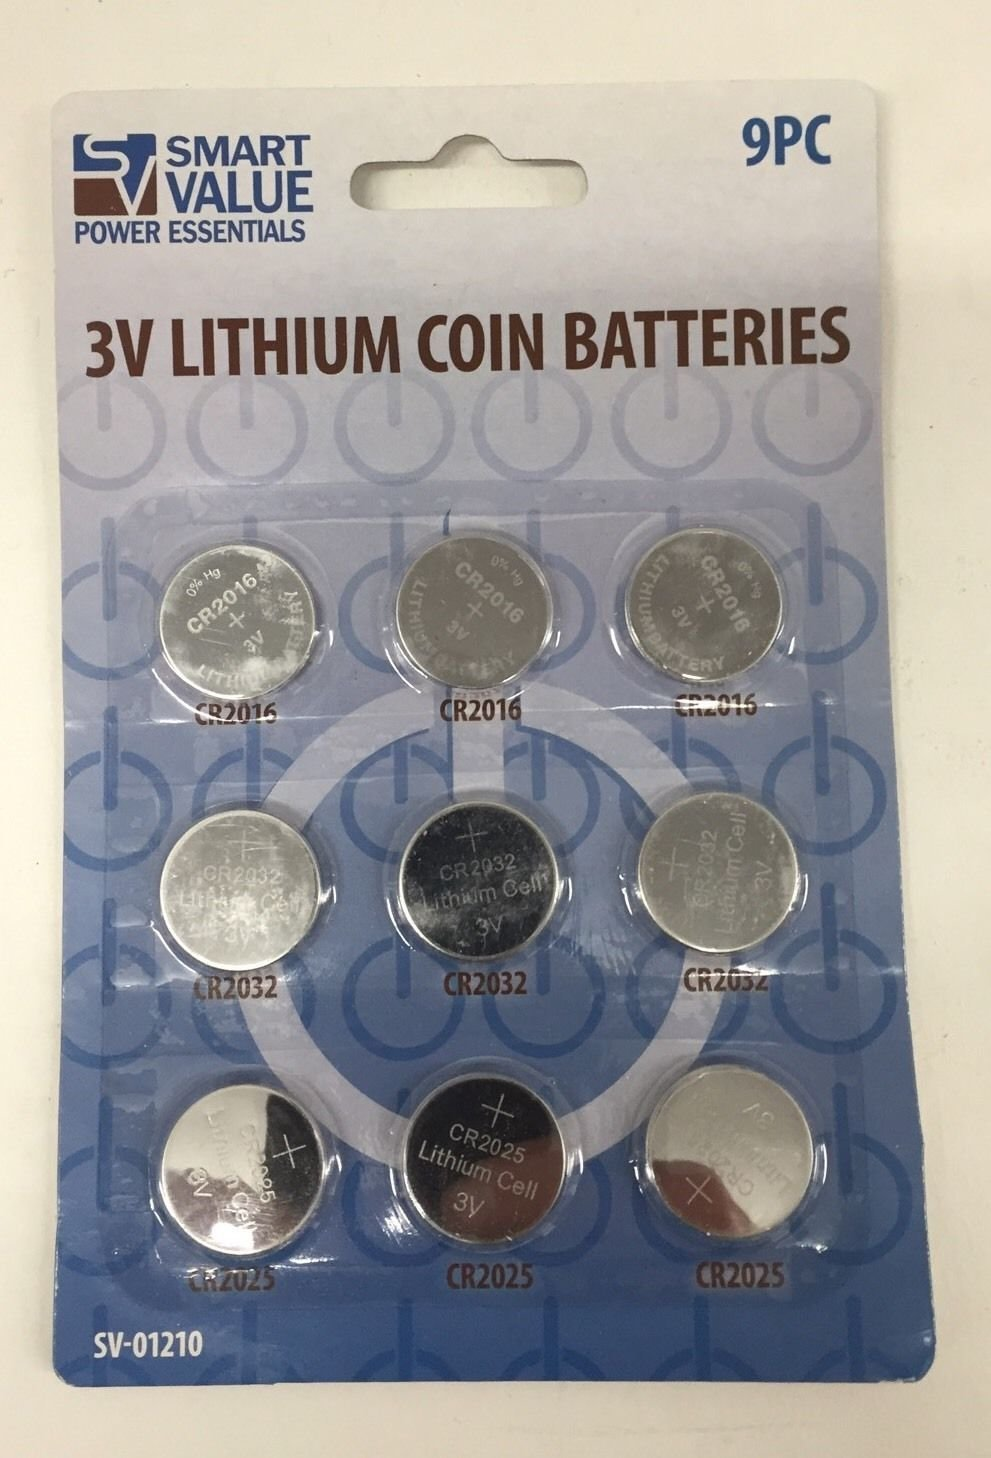 3 V Lithium Coin Batteries